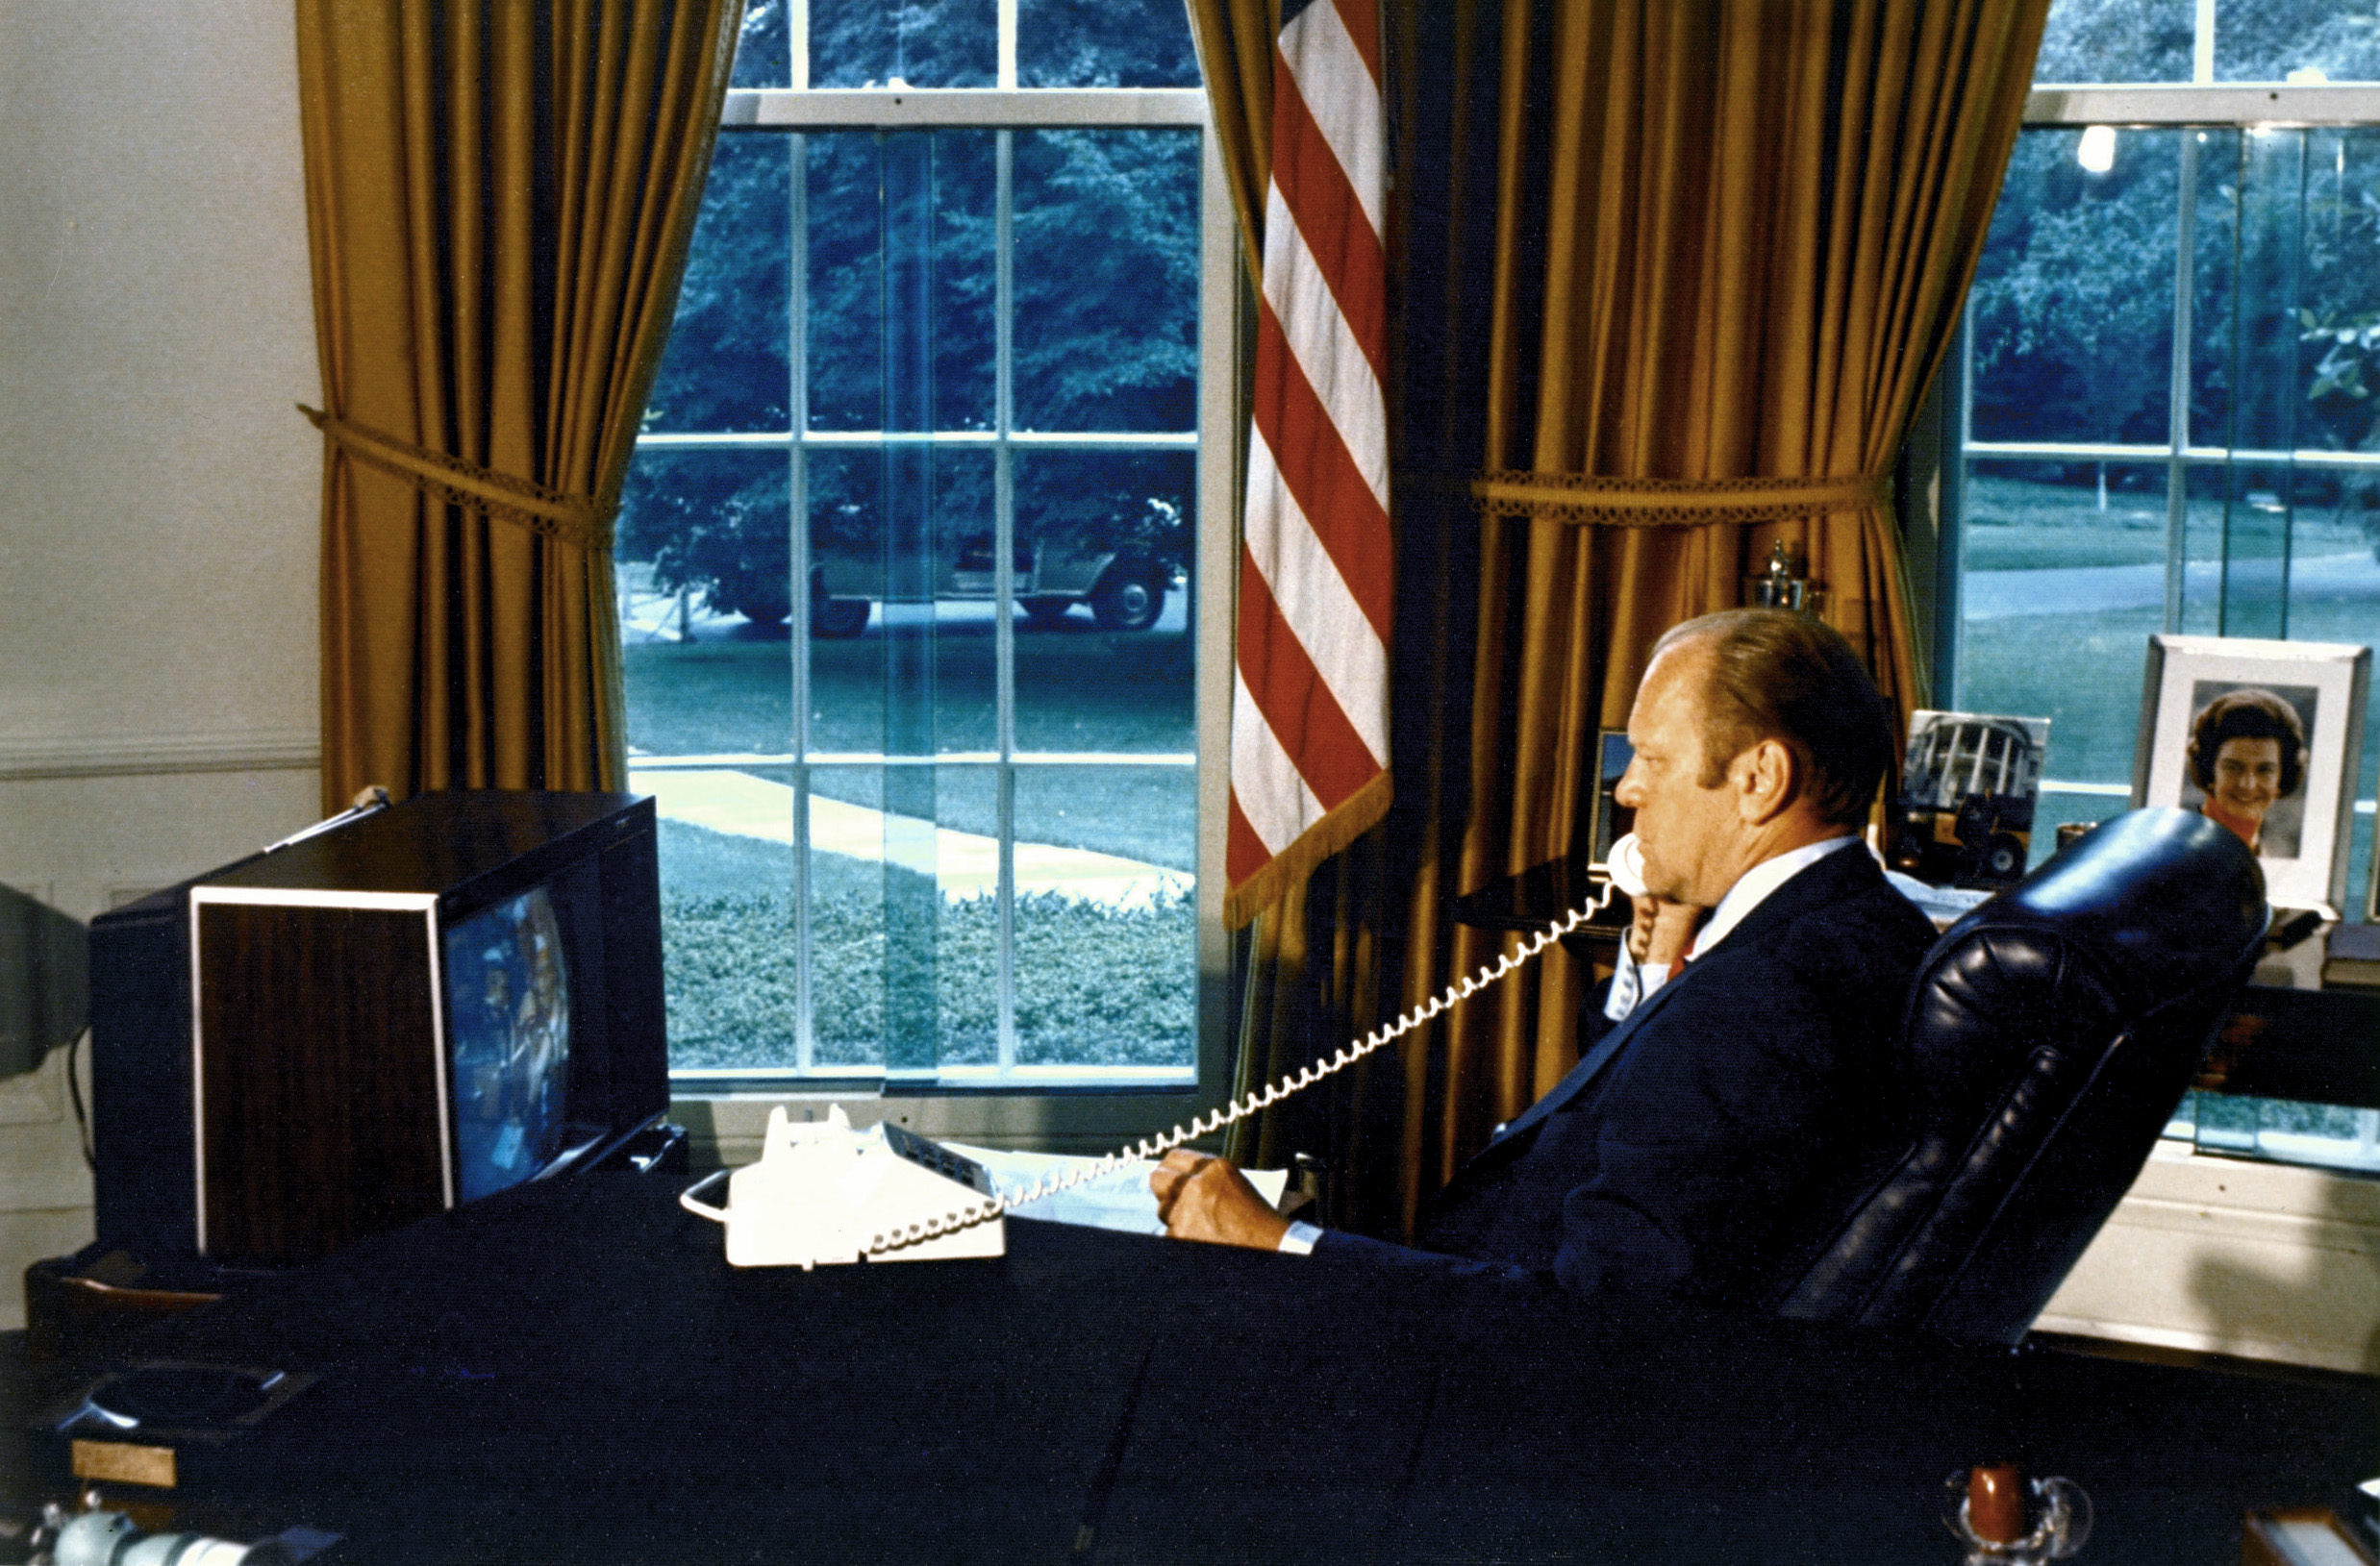 President Gerald R. Ford watches crewmen Tom Stafford, Donald Slayton and Valeriy Kubasov on a television as he talks to them by phone while they orbited the Earth on July 18, 1975. The American Apollo spacecraft and Soviet Soyuz spacecraft were docked.